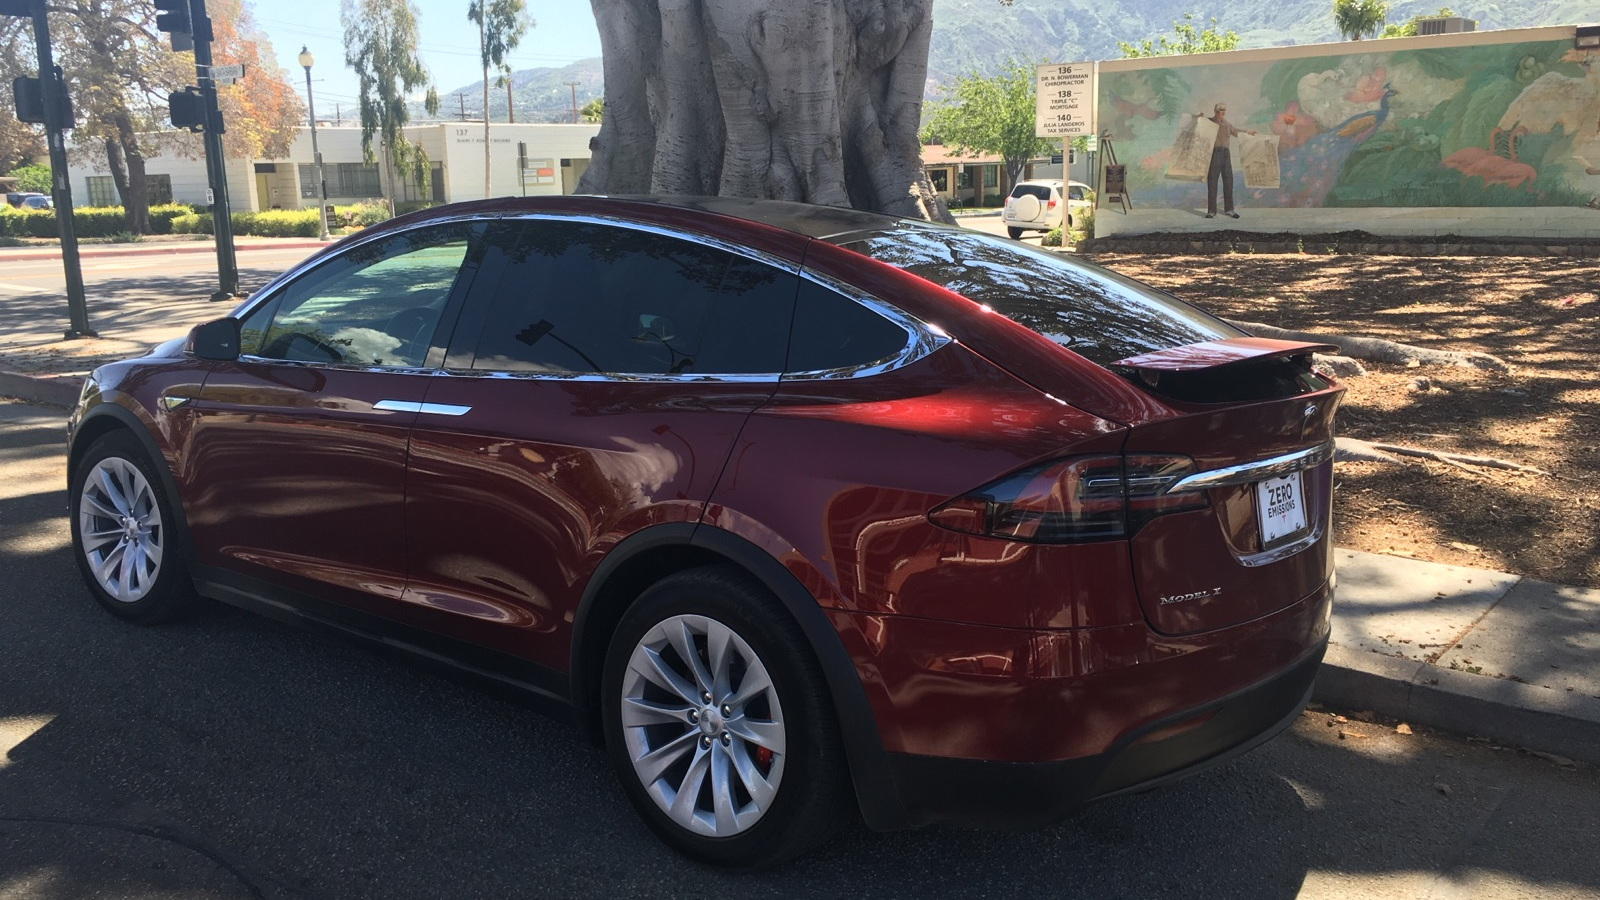 2016 Tesla Model X owned by Ron Merkord, March 2016  [photo: David Noland]